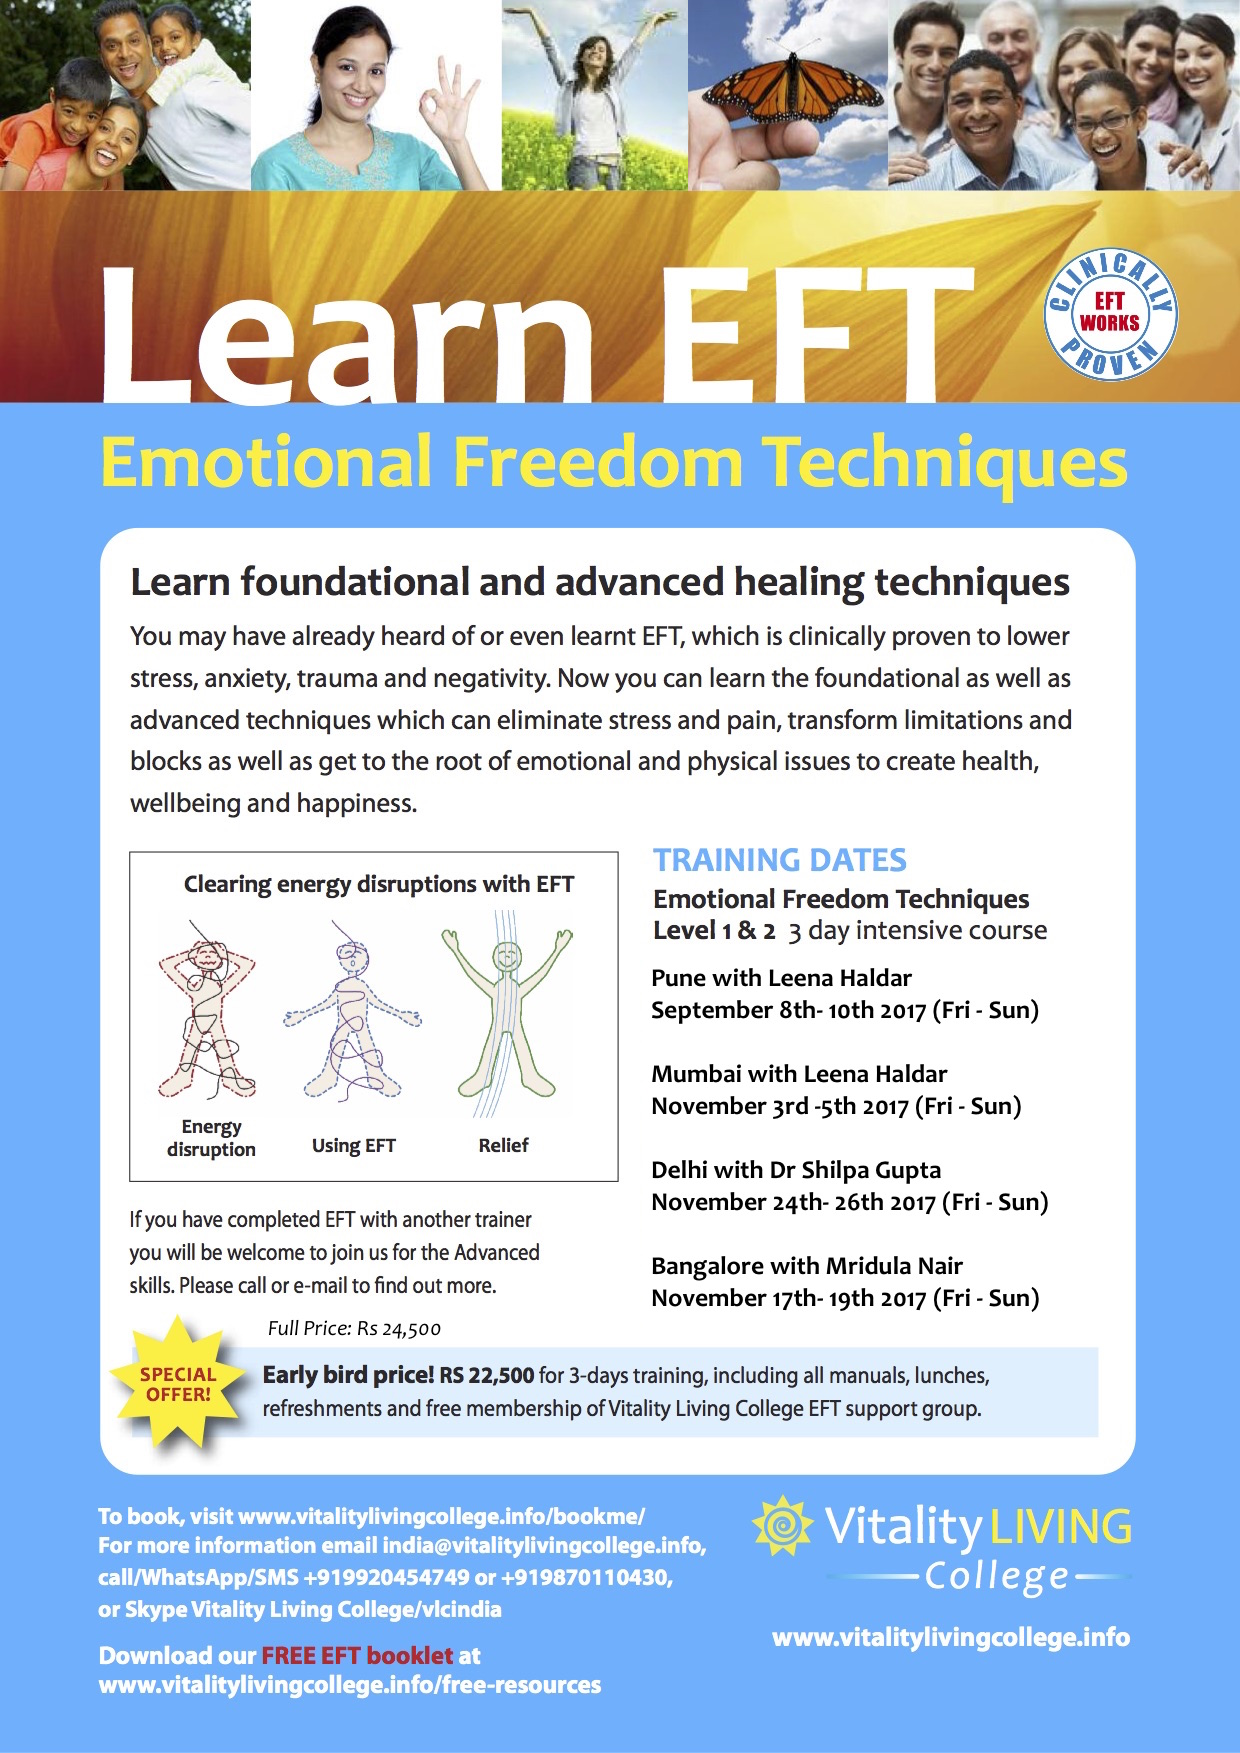 Emotional Freedom Techniques (EFT) Practitioner Training, Mumbai November 2017 with Vitality Living College Trainer Leena Haldar